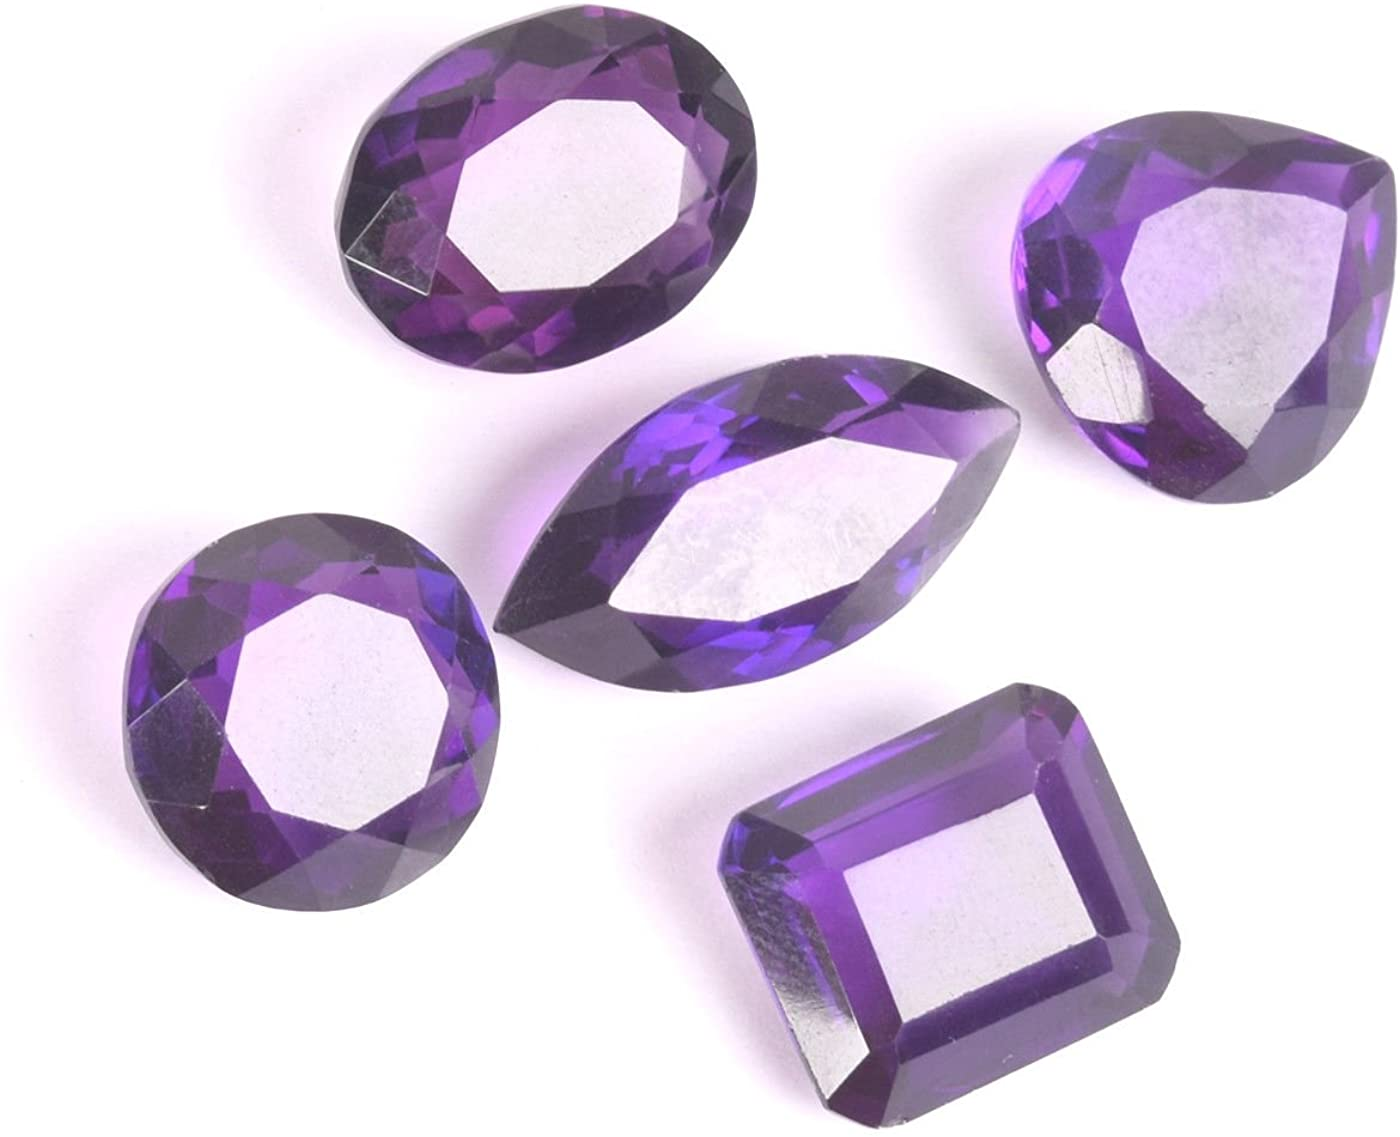 February Birthstone 70 Ct. Approx / 5 Pcs Different Cuts Attractive Violet Amethyst Loose Gemstones Lot